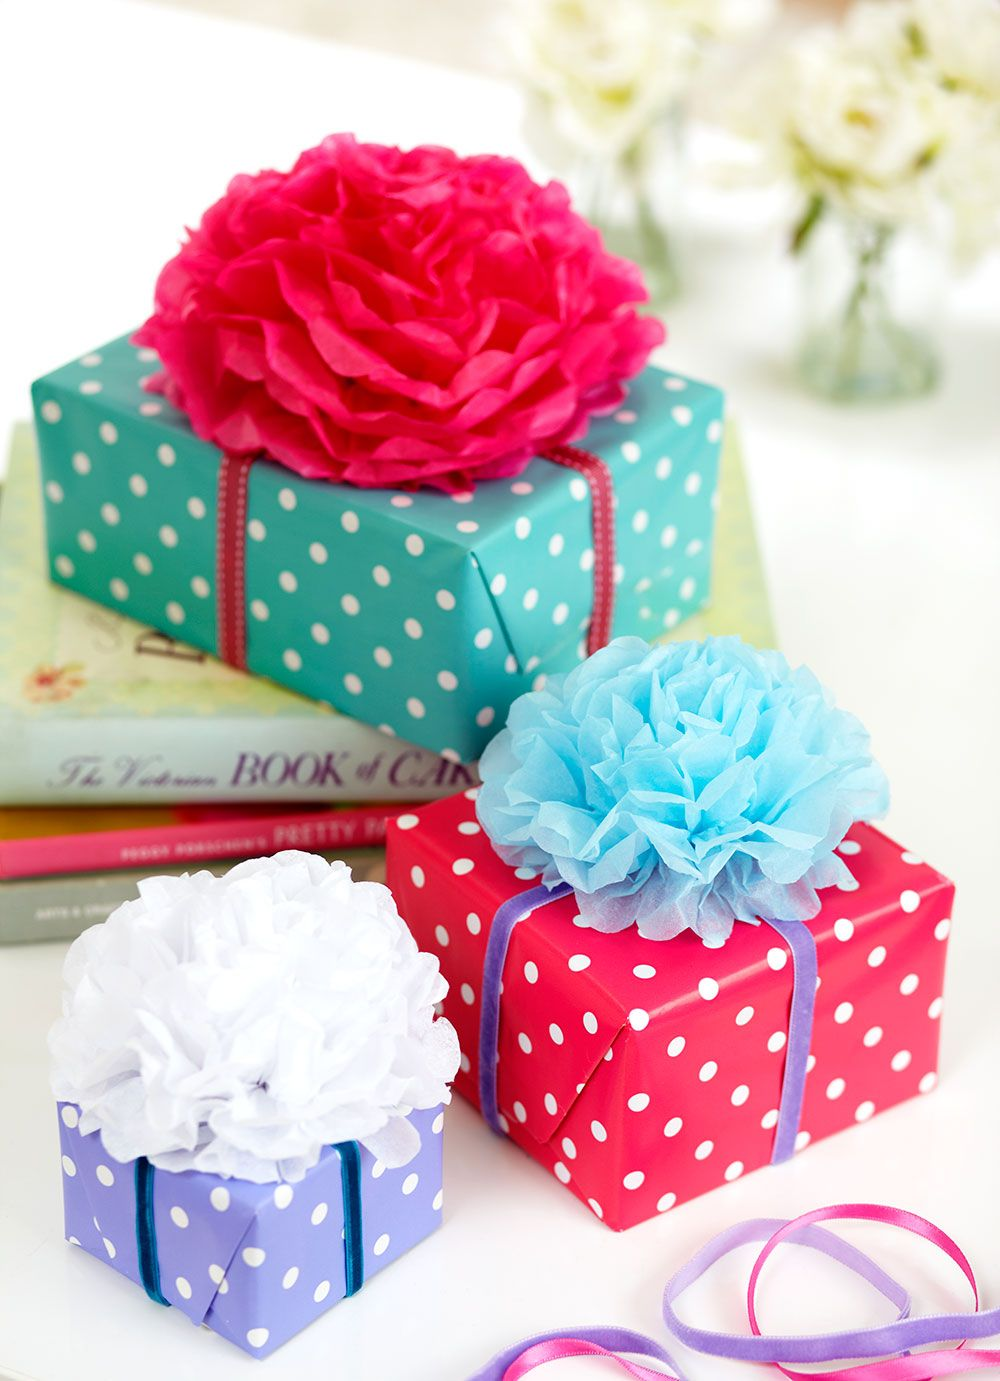 Make Handmade Tissue Paper Flowers